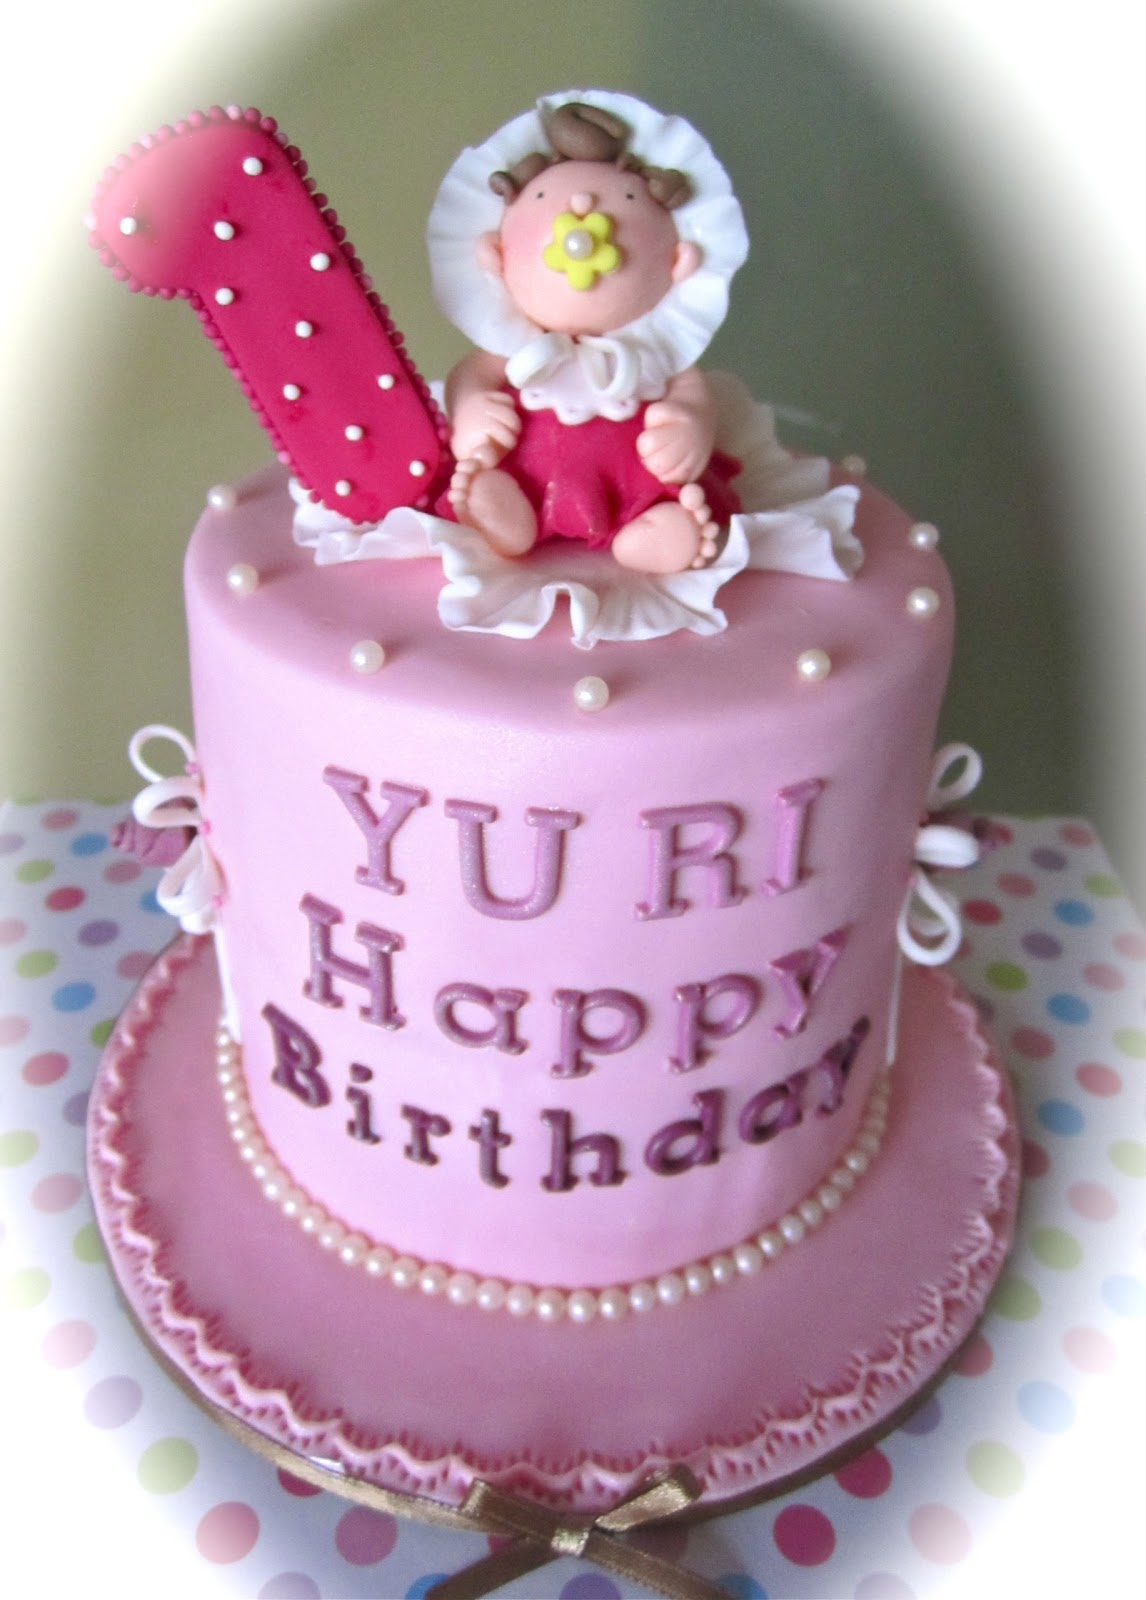 Baby Doll Cake Images : Sweet APRIL -The Story of April: Baby Doll Cake